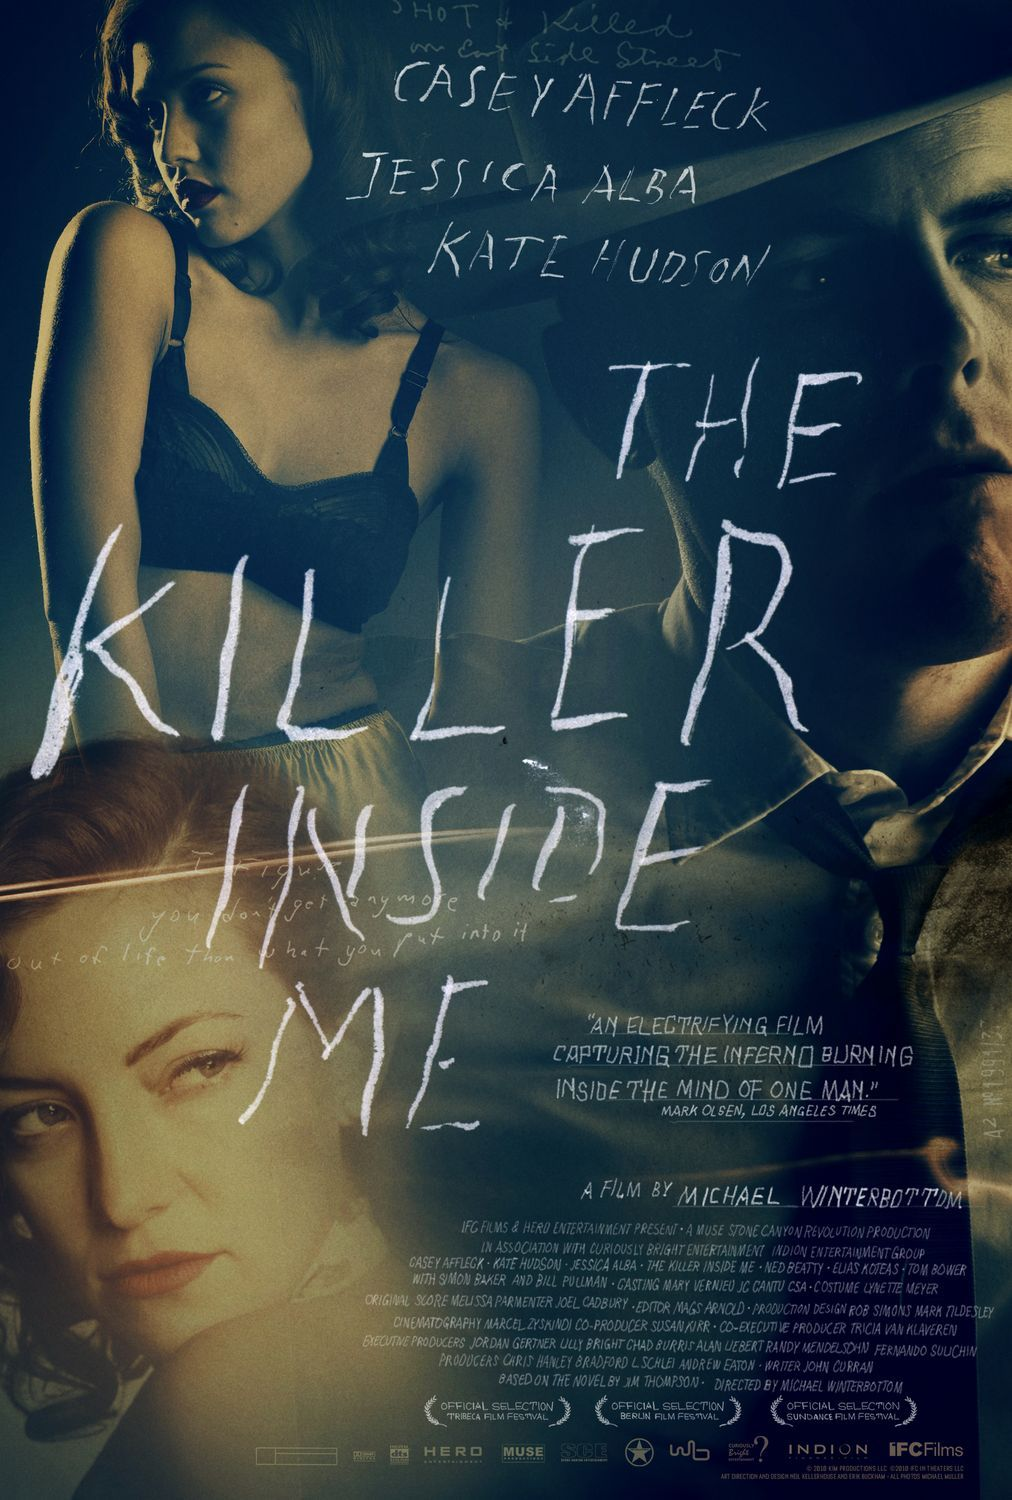 Trailer and poster for the killer inside me starring casey for Inside movie